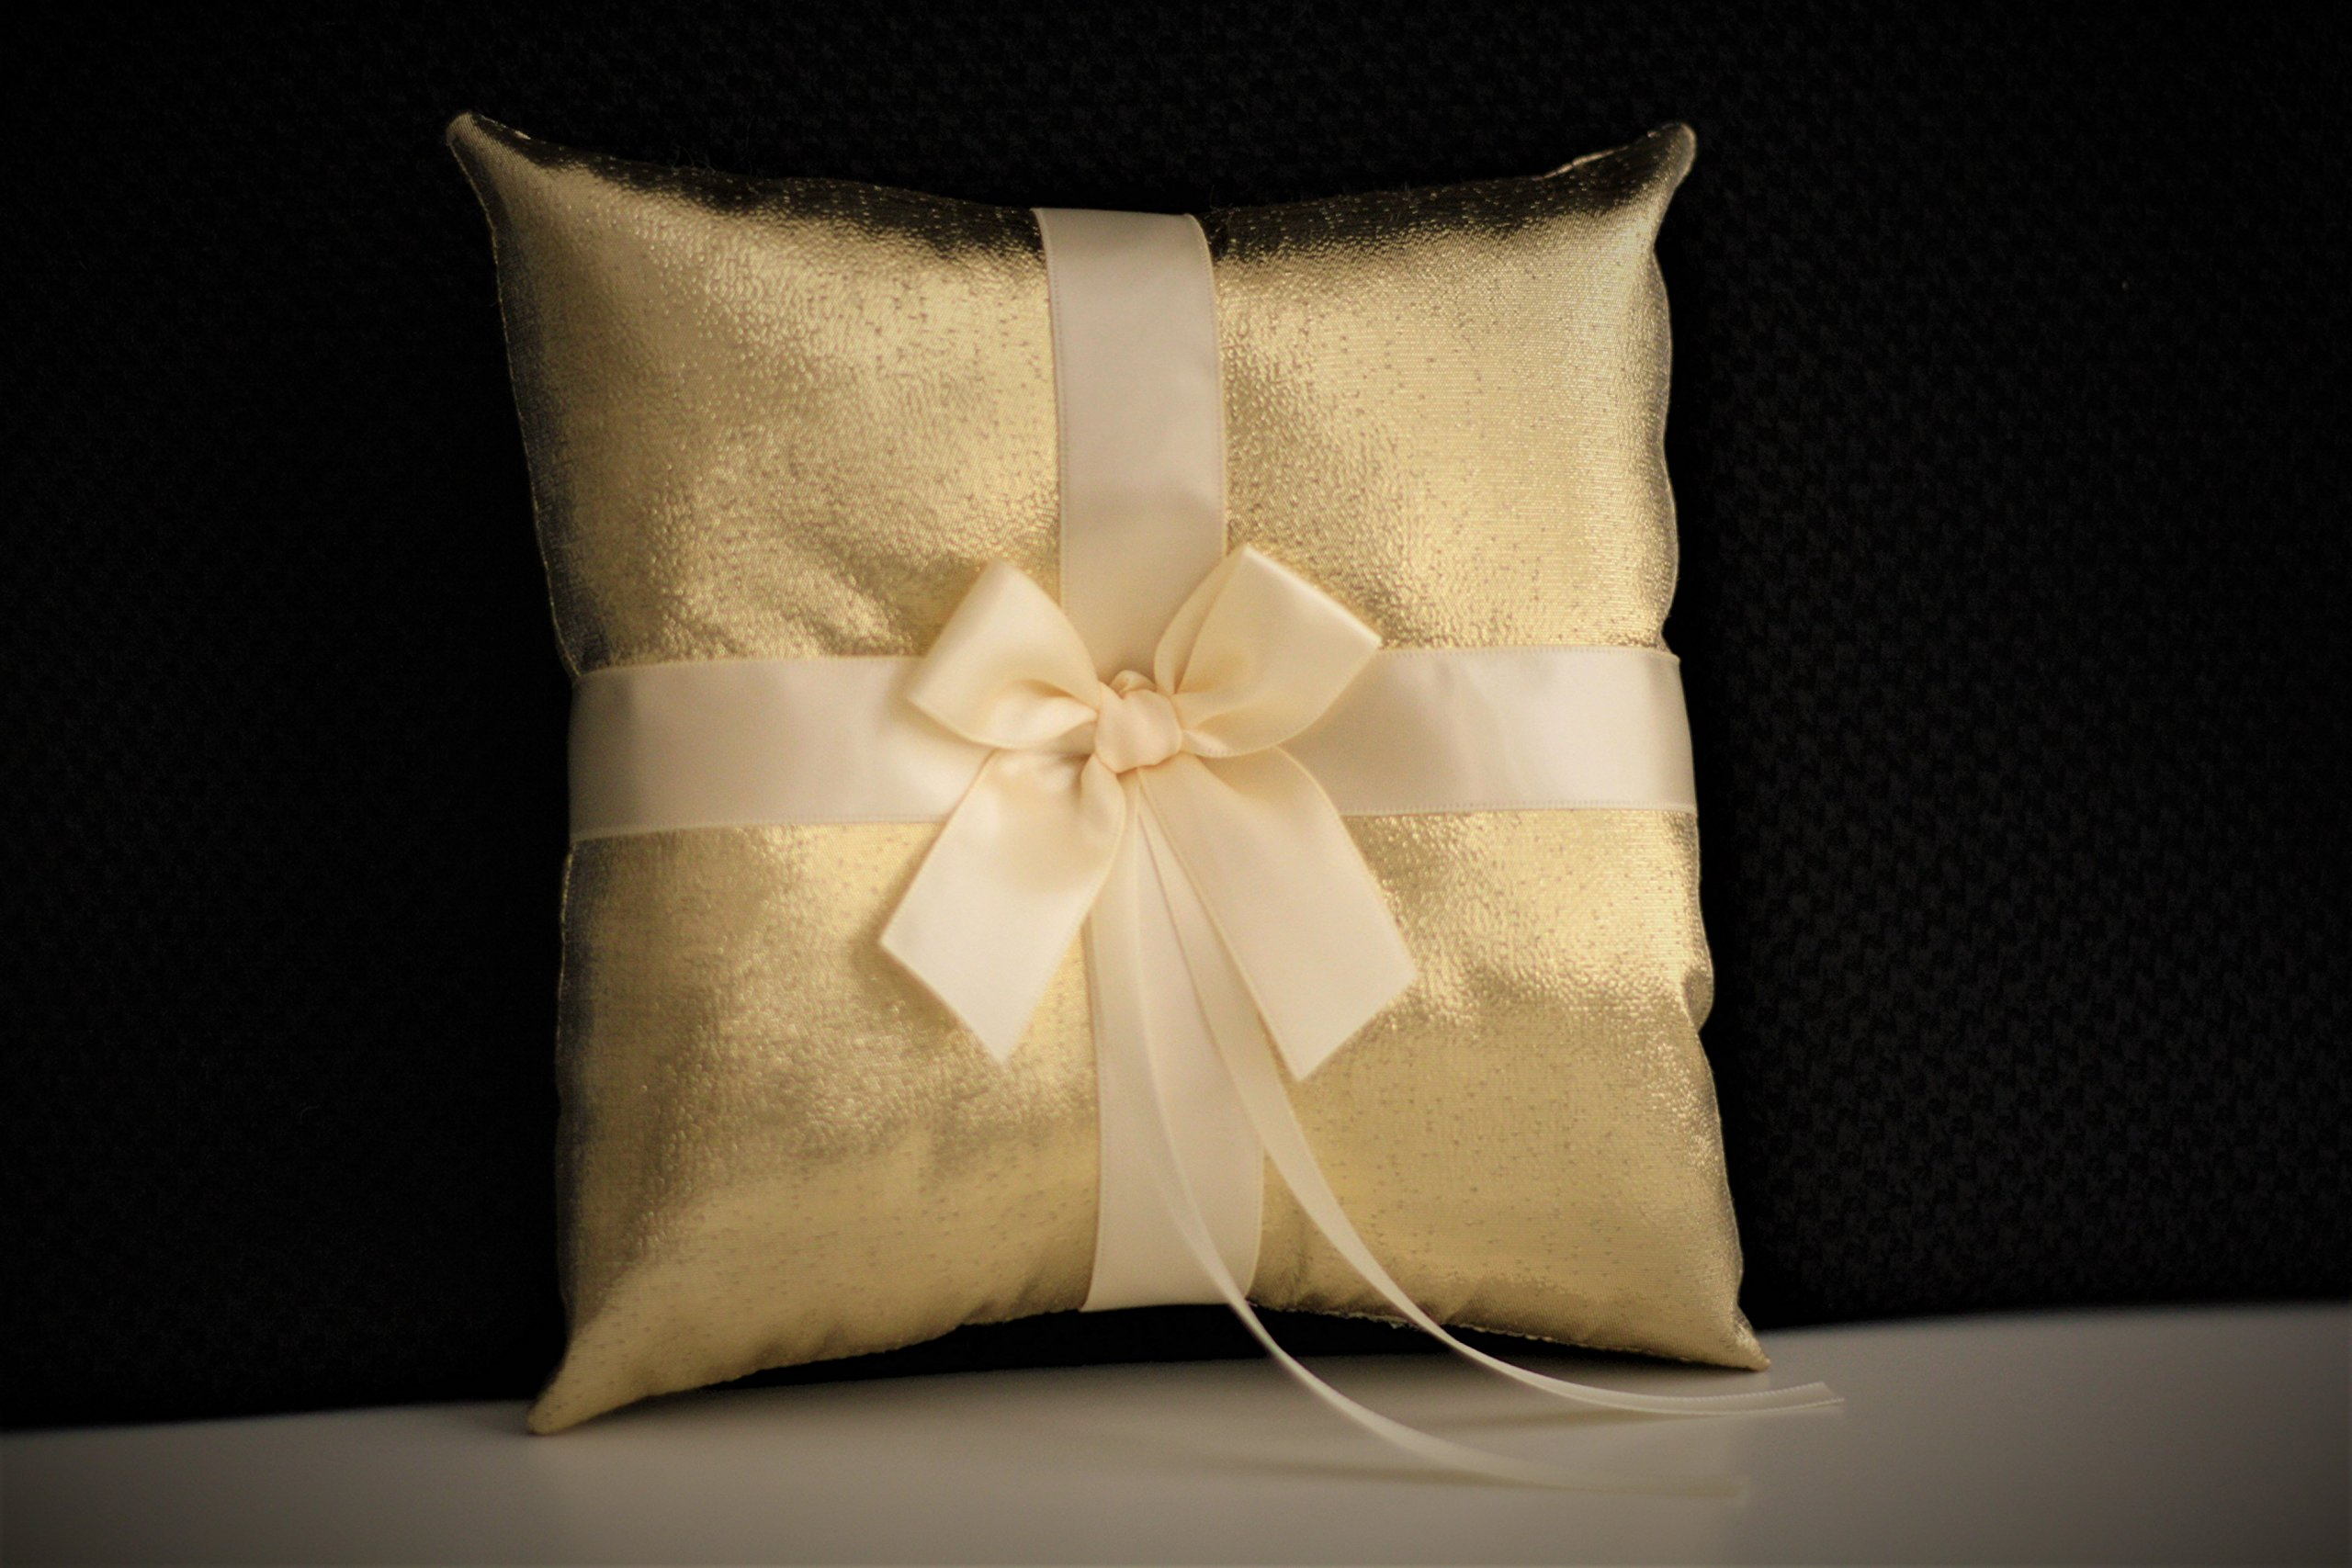 Gold Ivory Wedding Ring Bearer Pillow, Ivory Gold Wedding Accessories / Handmade Gold Wedding Ring Pillow, Gatsby Style Wedding | Alex Emotions | Gold Collection by Alex Emotions